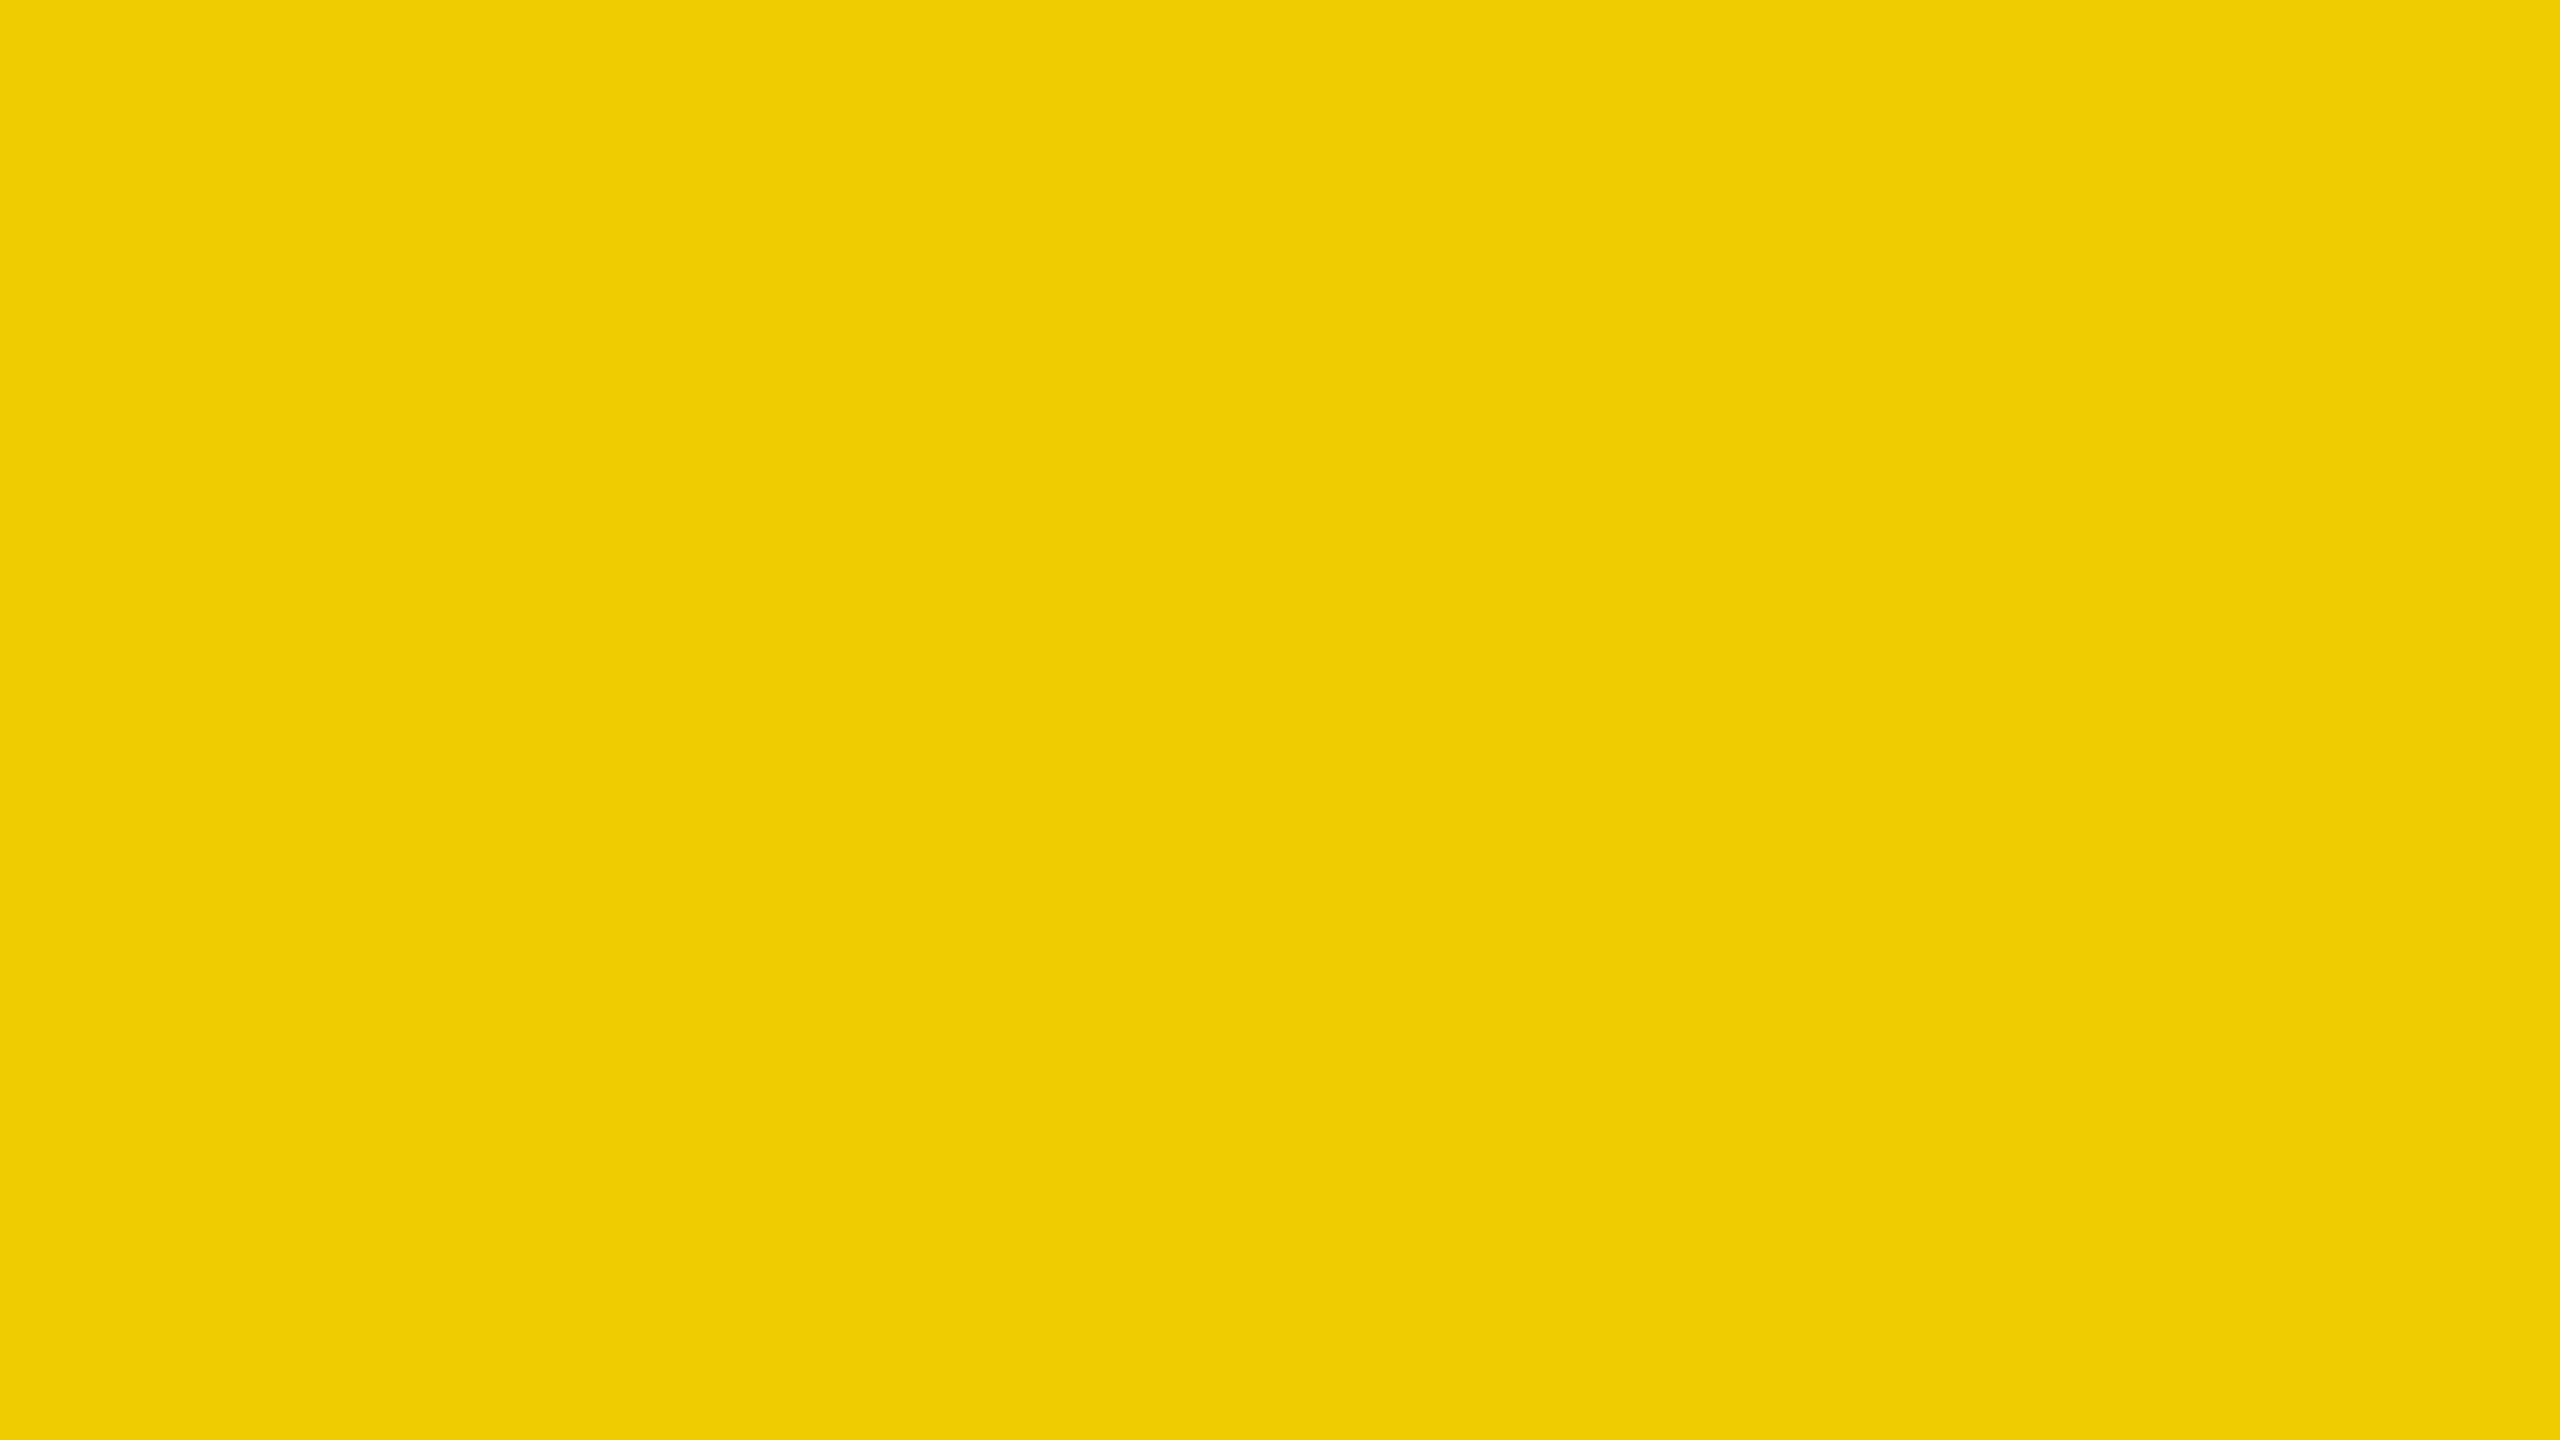 2560x1440 Yellow Munsell Solid Color Background